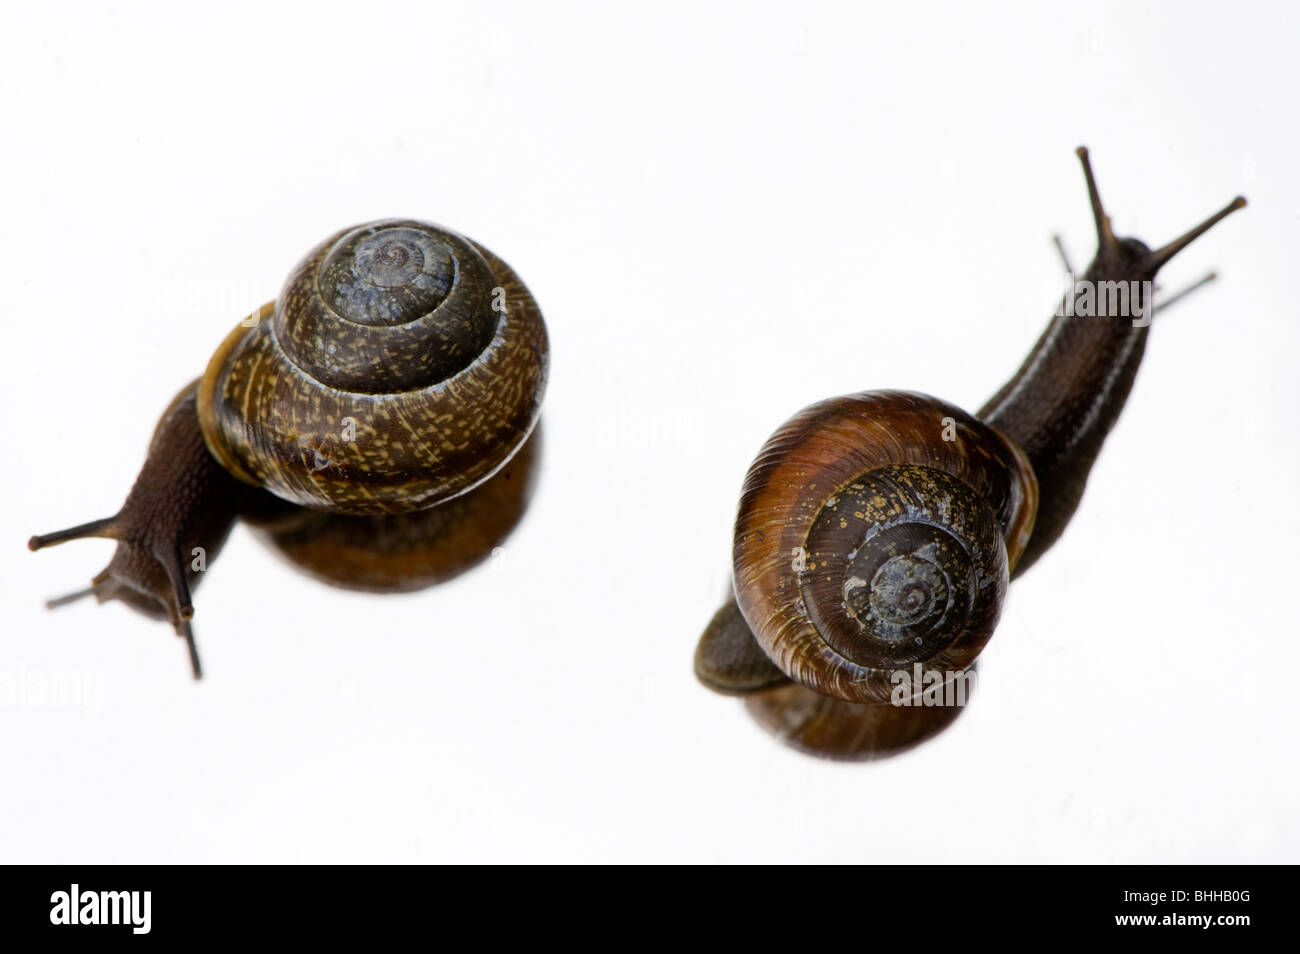 Snails on a mirror, close-up, Sweden. - Stock Image